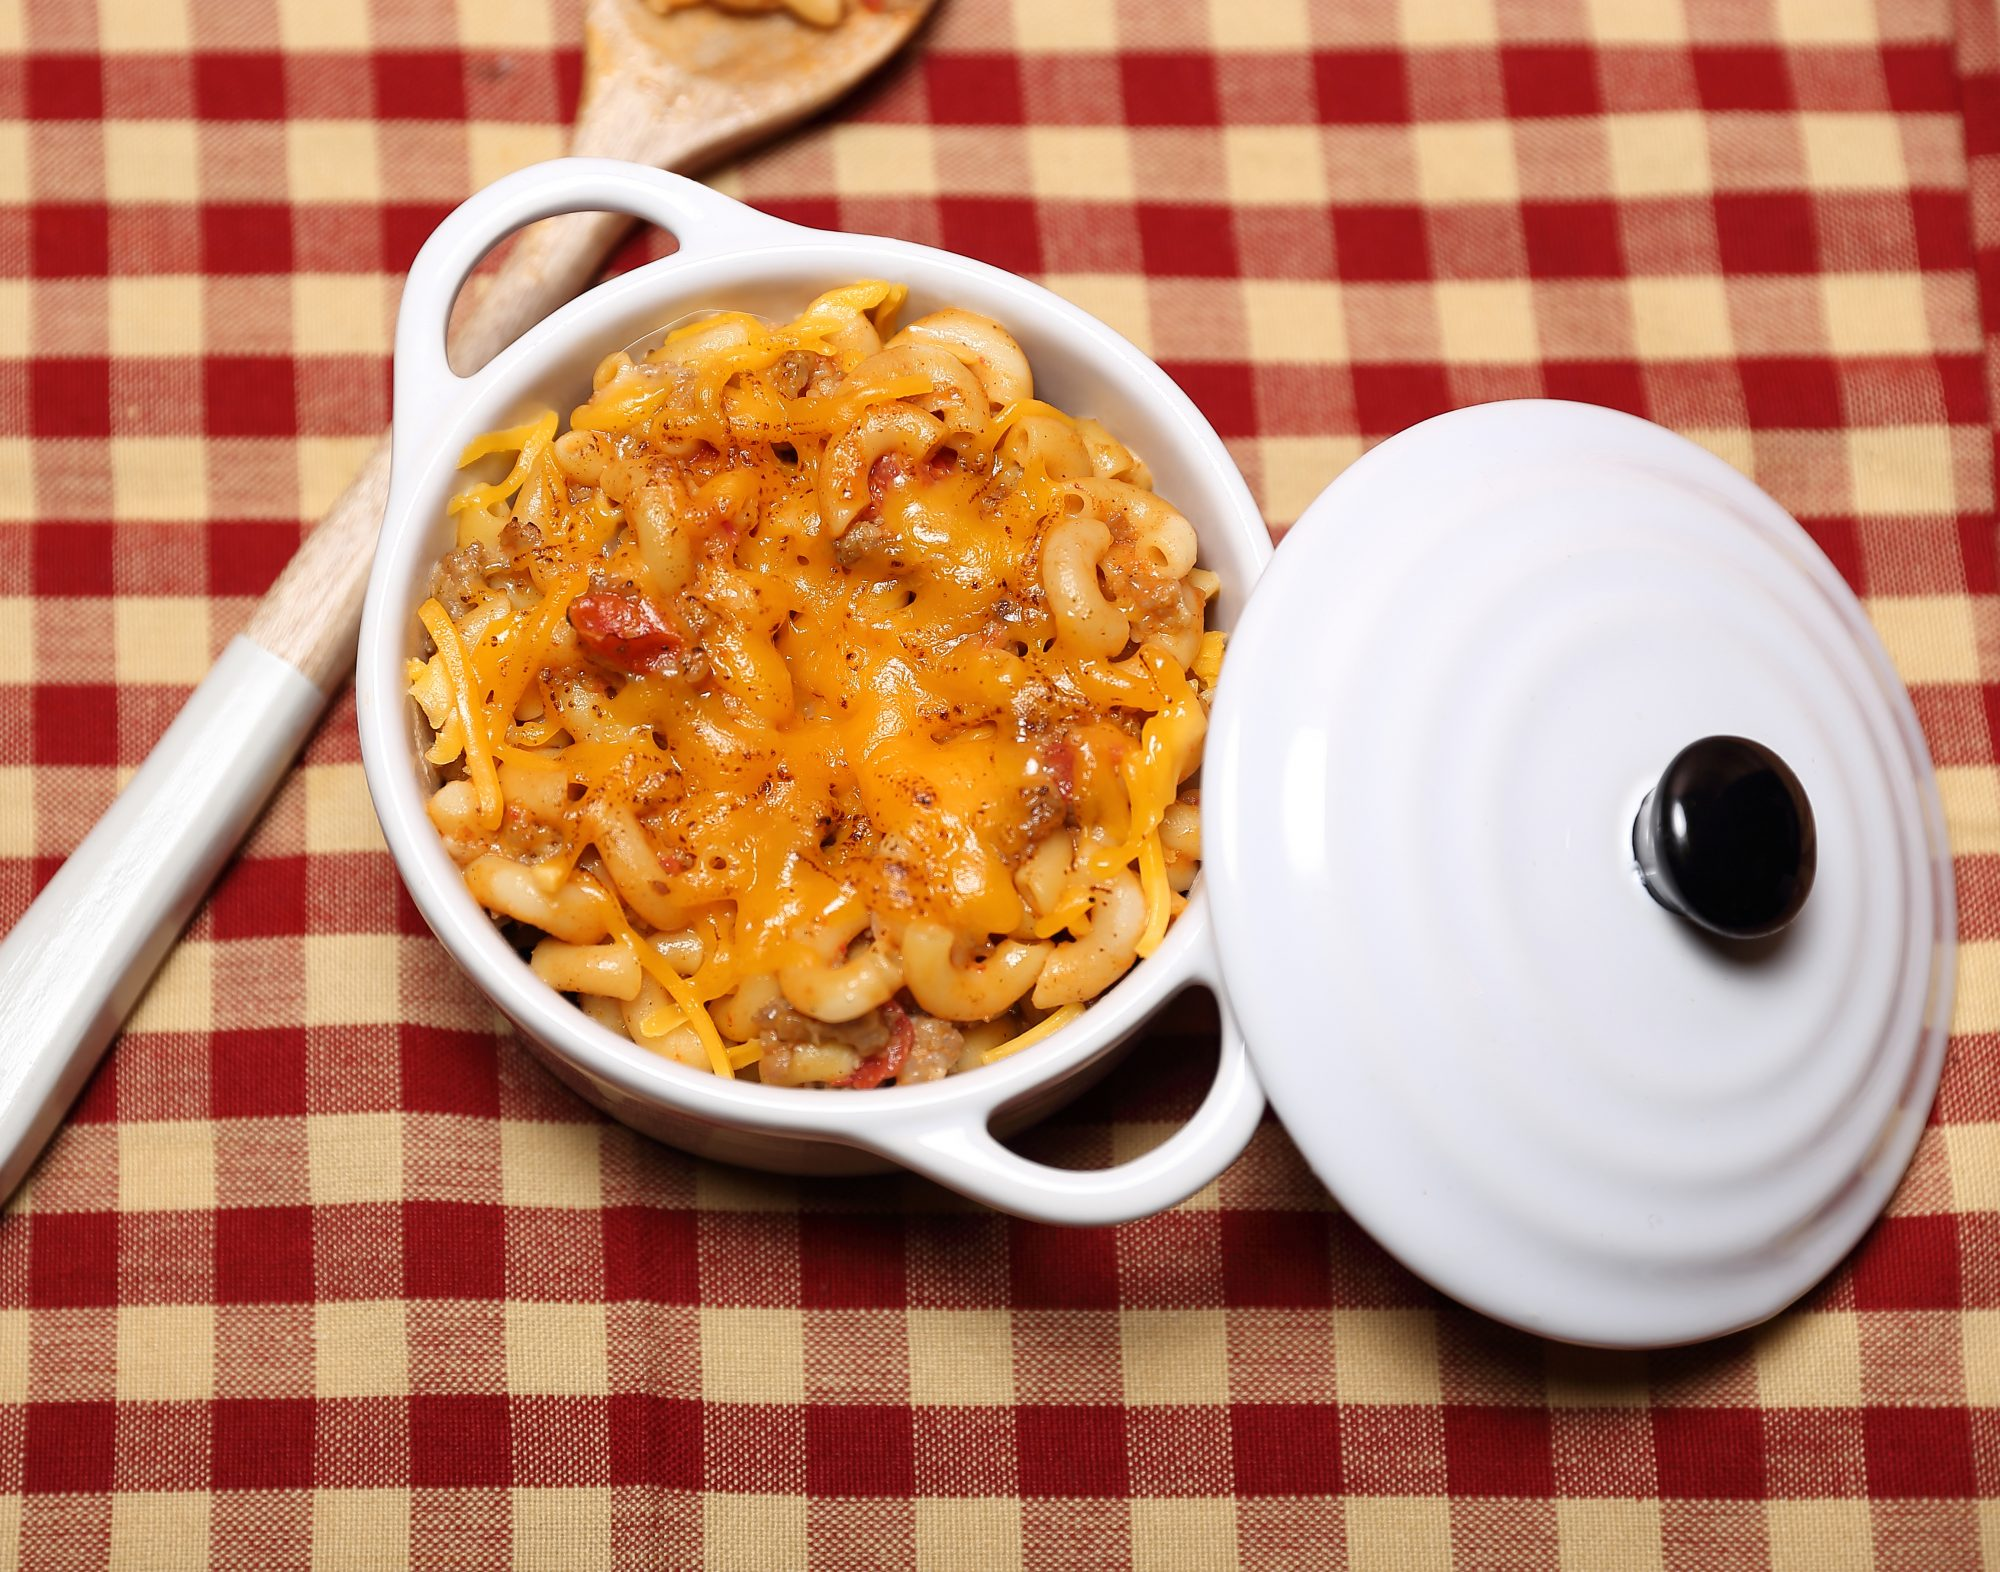 sausage macaroni and cheese on a red and tan checkered tablecloth